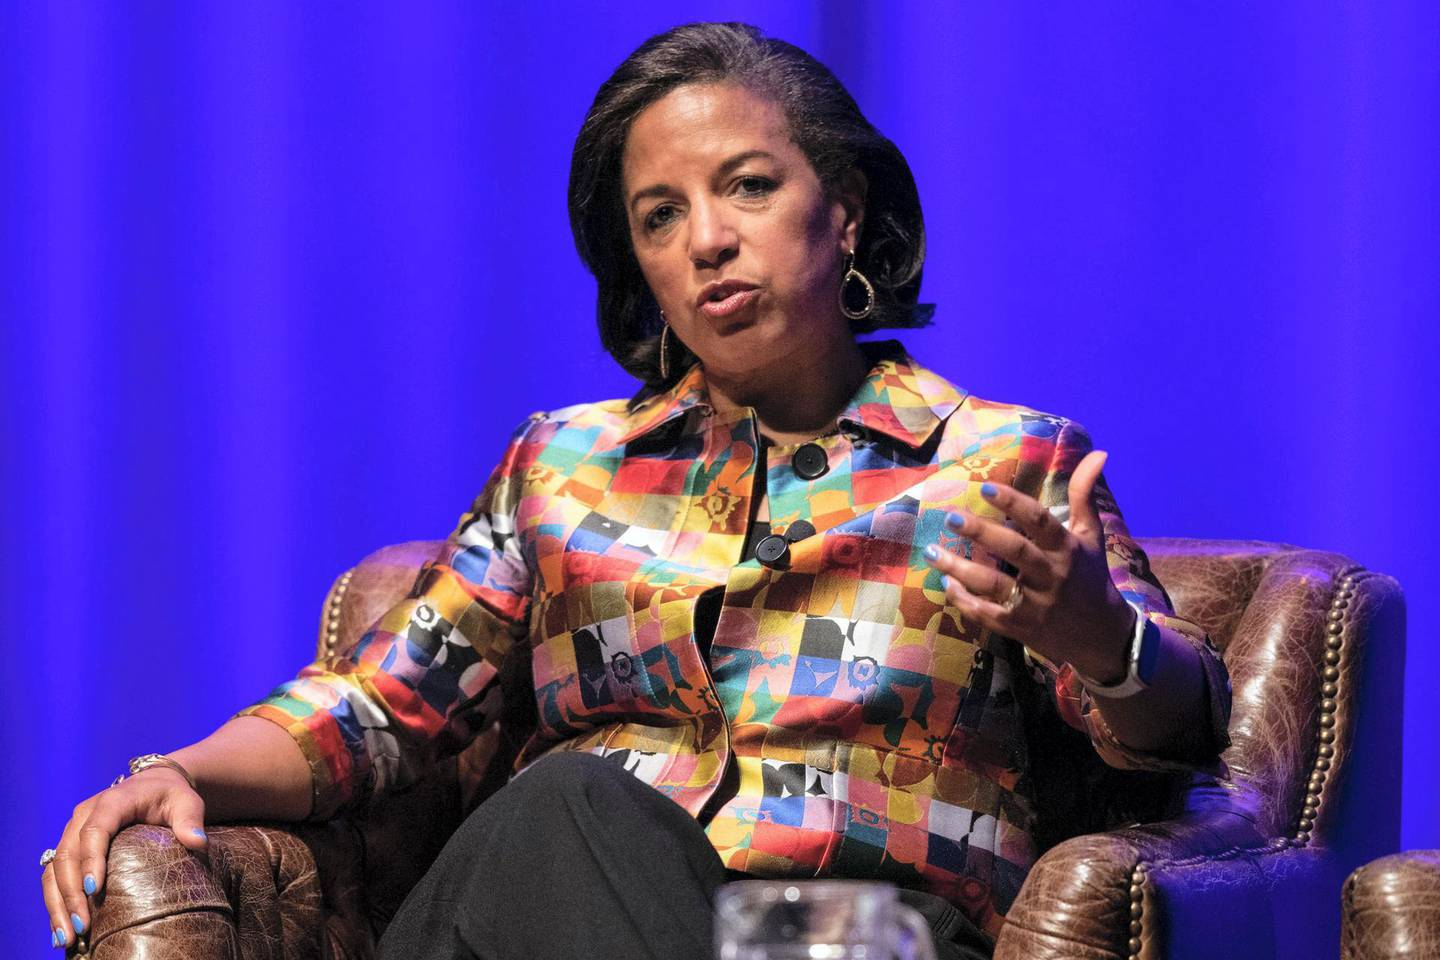 Former National Security Advisor and Ambassador to the United Nations Susan Rice speaks during the Vanderbilt Chancellor   s Lecture Series event at Vanderbilt University's Langford Auditorium in Nashville, Tenn., Wednesday, Feb. 19, 2020.Bolton Rice 021920 011